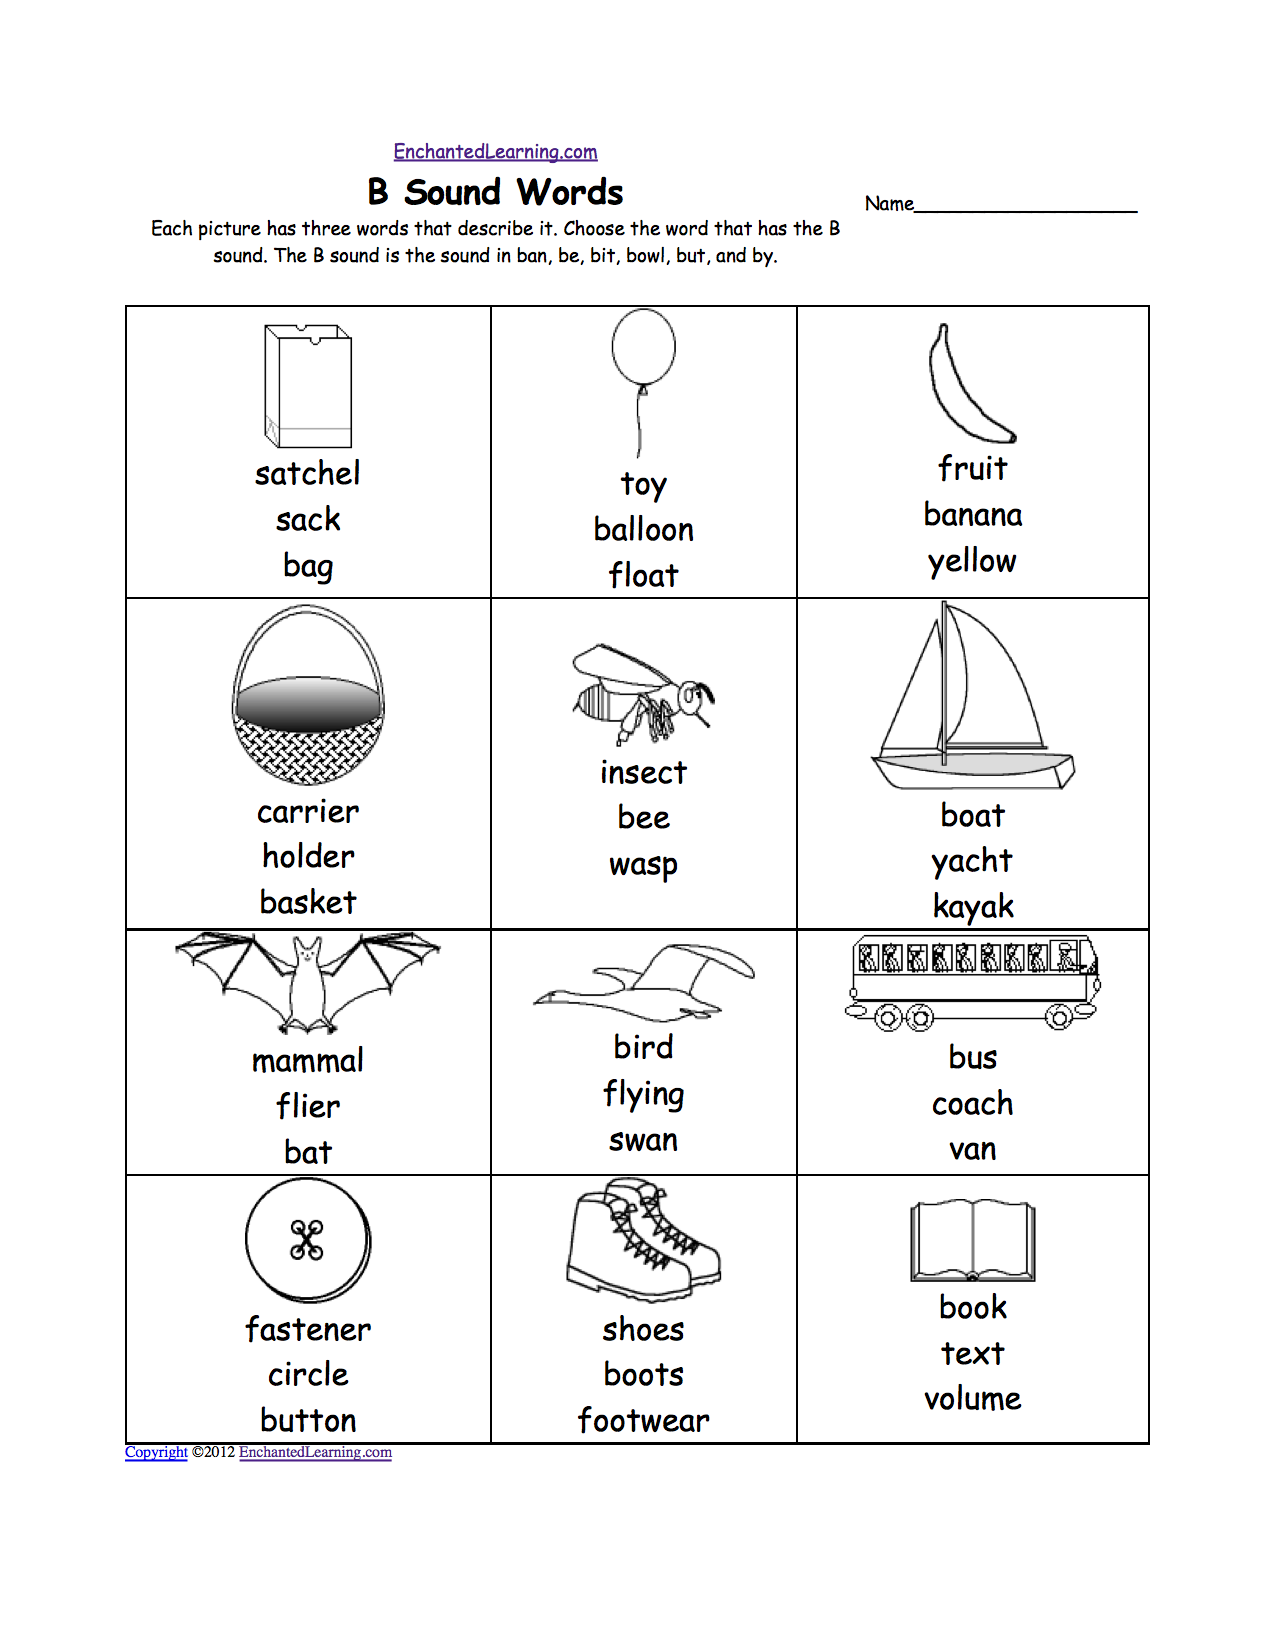 Weirdmailus  Inspiring Phonics Worksheets Multiple Choice Worksheets To Print  With Glamorous Quotbquot Sound Phonics Worksheet Multiple Choice Each Picture Has Three Words That Describe It Choose The Word That Has A Quotbquot Sound The Quotbquot Sound Is The Sound  With Archaic Grade  Science Worksheets Also Area Worksheets Pdf In Addition Blank Math Worksheets And Context Clues Worksheets For Nd Grade As Well As Map Of The United States Worksheet Additionally Th Grade Comprehension Worksheet From Enchantedlearningcom With Weirdmailus  Glamorous Phonics Worksheets Multiple Choice Worksheets To Print  With Archaic Quotbquot Sound Phonics Worksheet Multiple Choice Each Picture Has Three Words That Describe It Choose The Word That Has A Quotbquot Sound The Quotbquot Sound Is The Sound  And Inspiring Grade  Science Worksheets Also Area Worksheets Pdf In Addition Blank Math Worksheets From Enchantedlearningcom